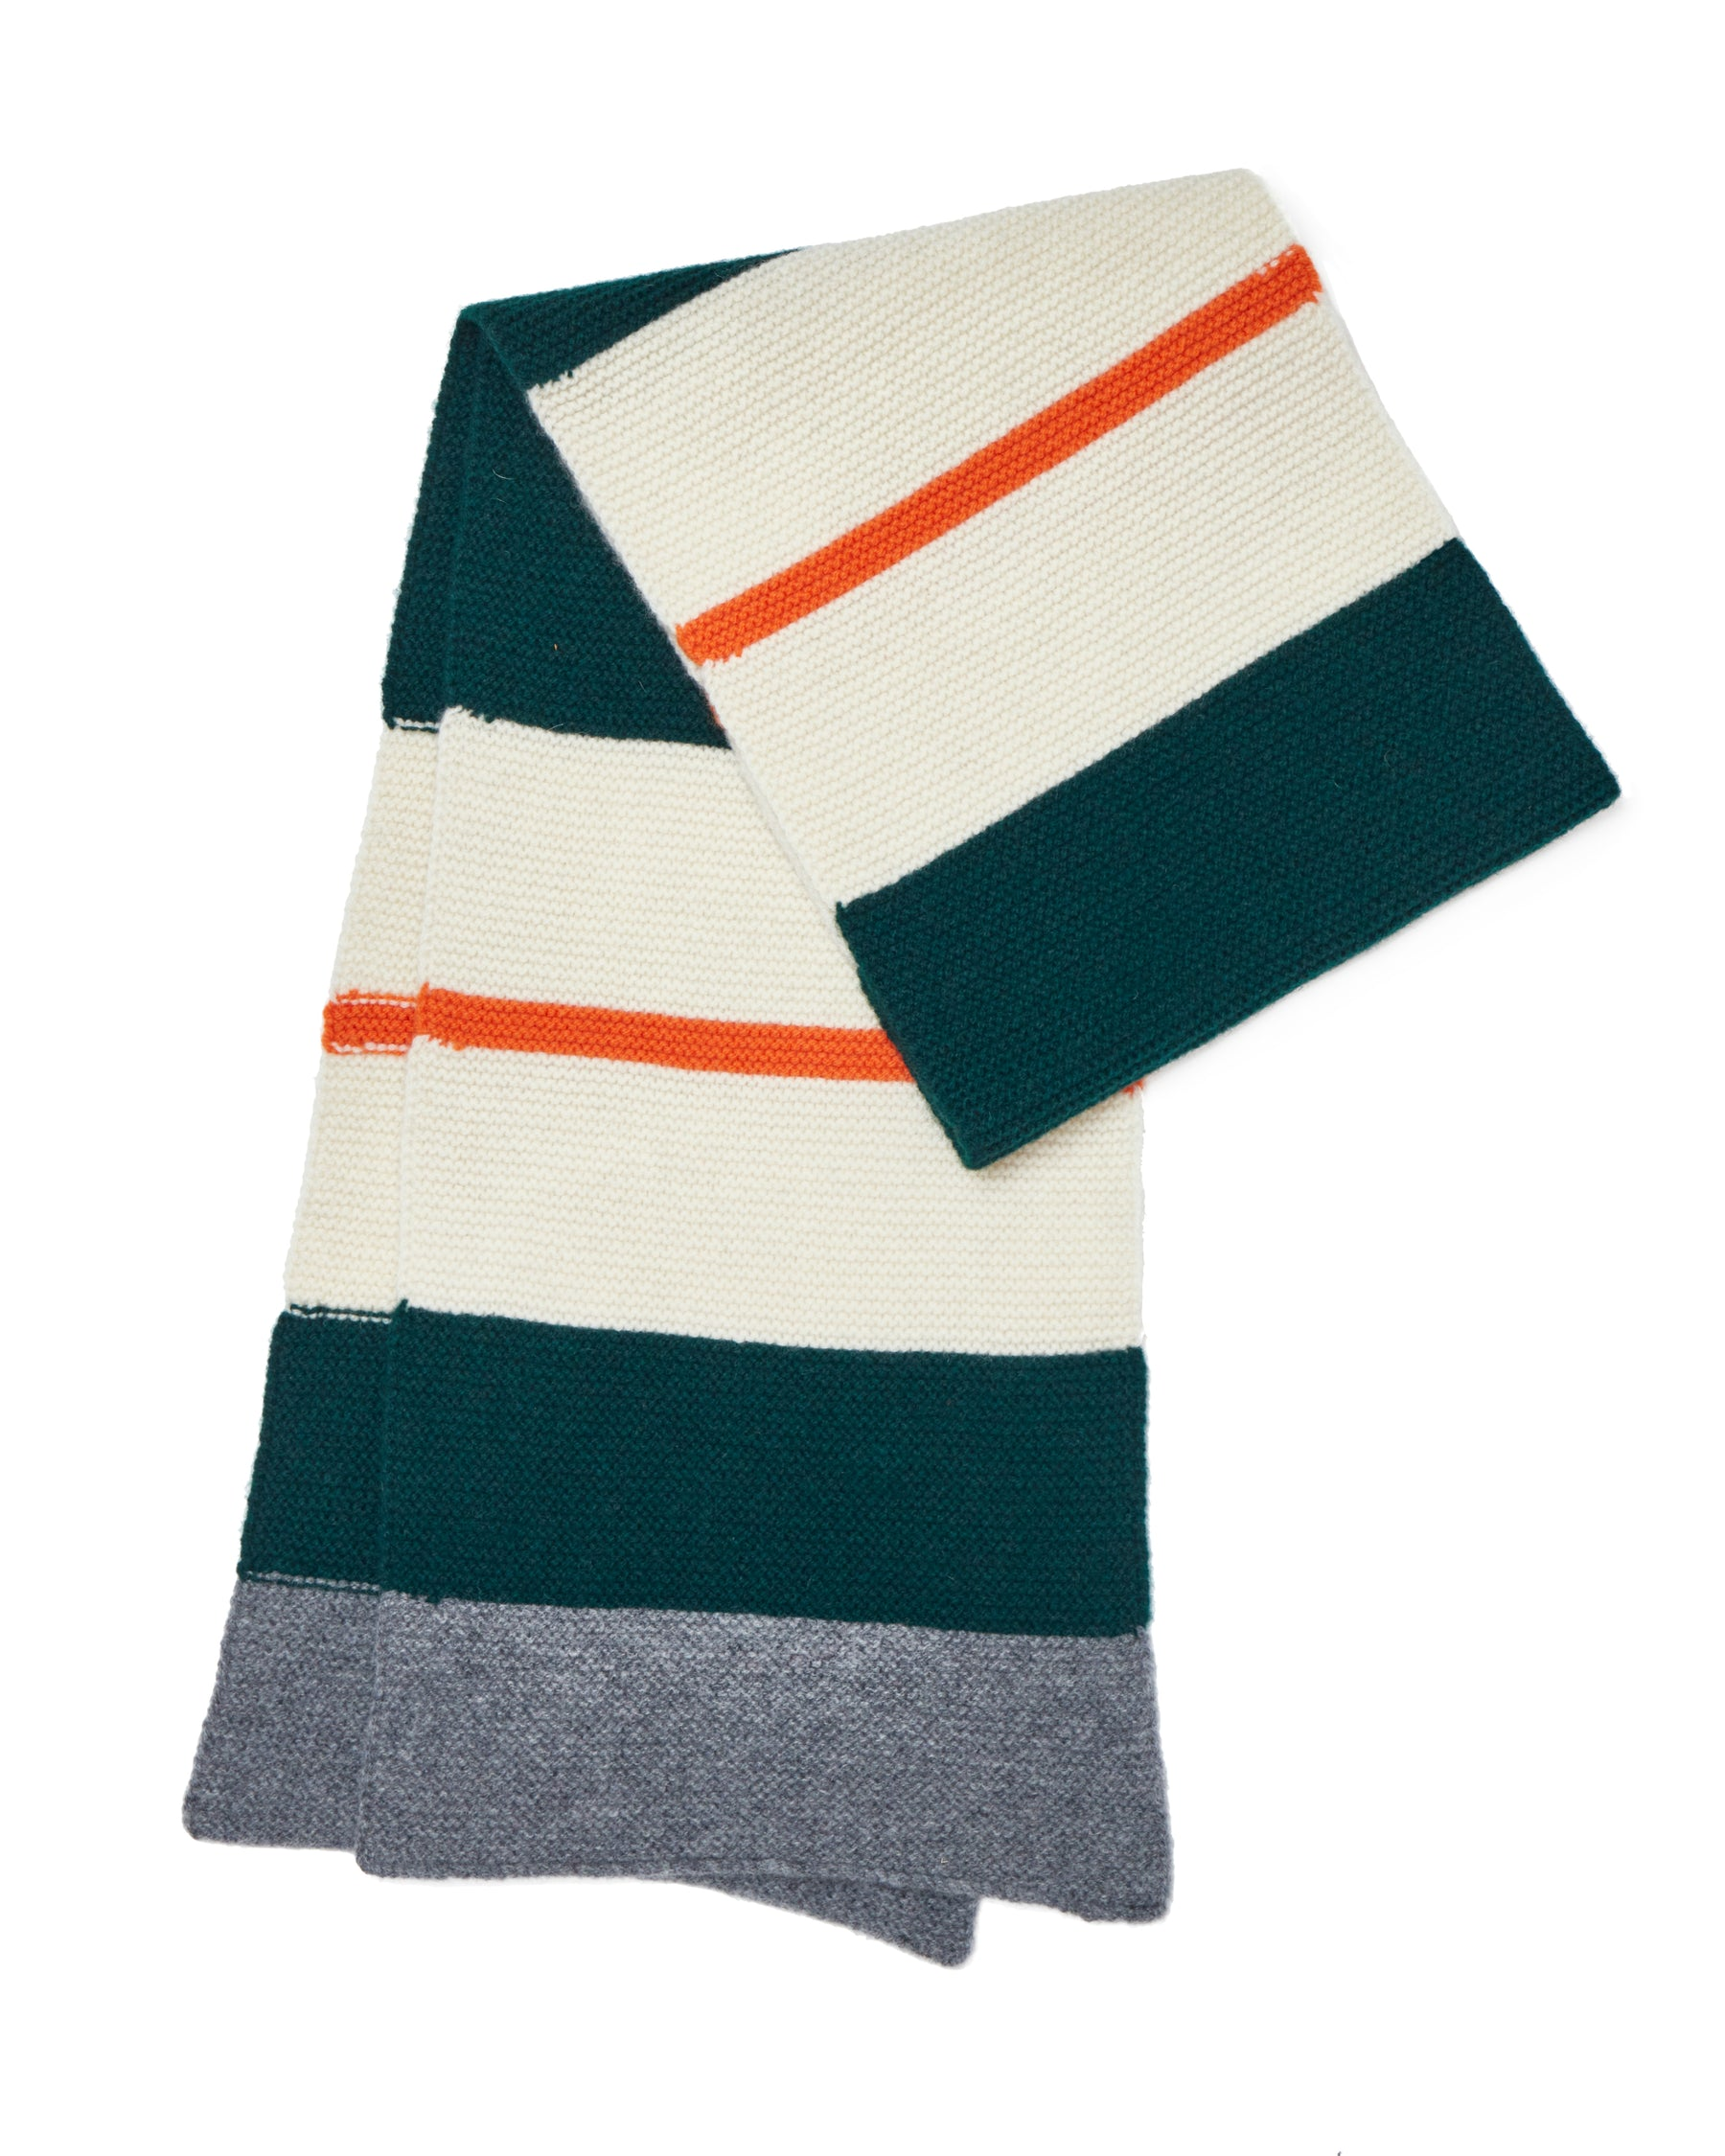 LINKS COLLEGE STRIPE SCARF • ECRU